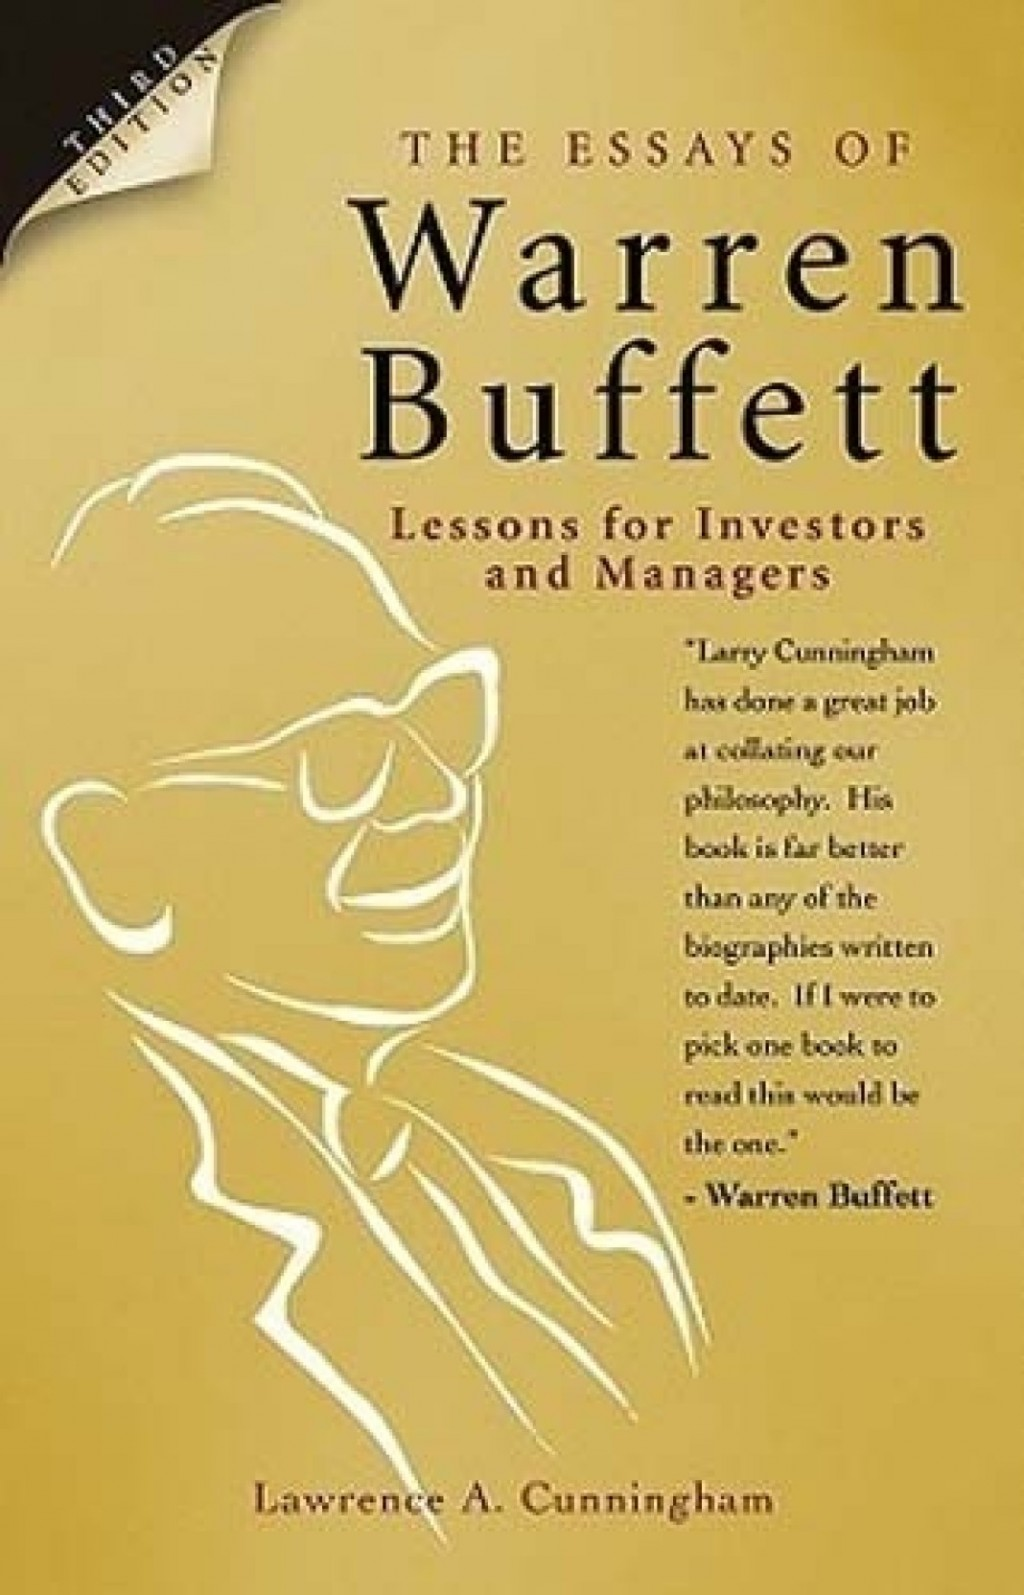 020 The Essays Of Warren Buffett Lessons For Investors And Managers Original Imaefwkrmxazxvdeq90 Essay Stirring Pages Audiobook Download Summary Large